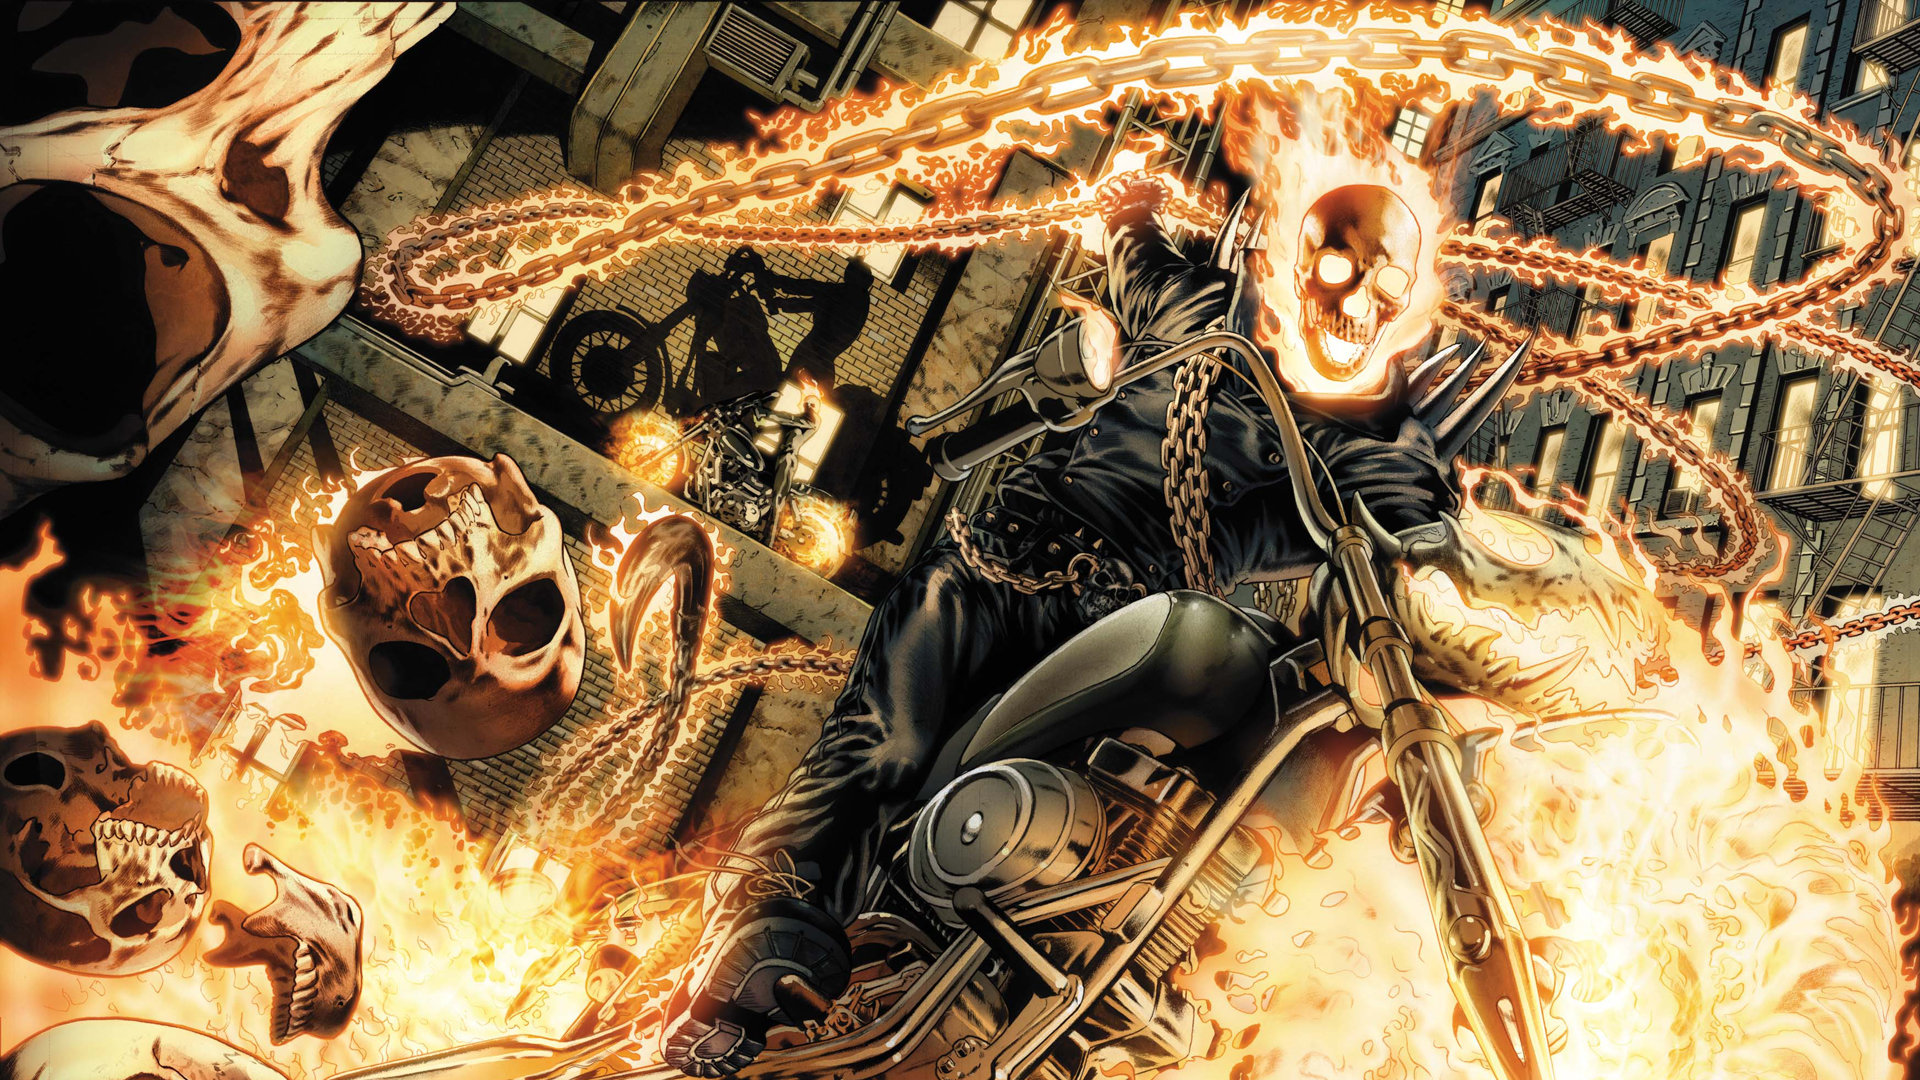 ghost rider wallpapers 1920x1080 full hd 1080p desktop backgrounds